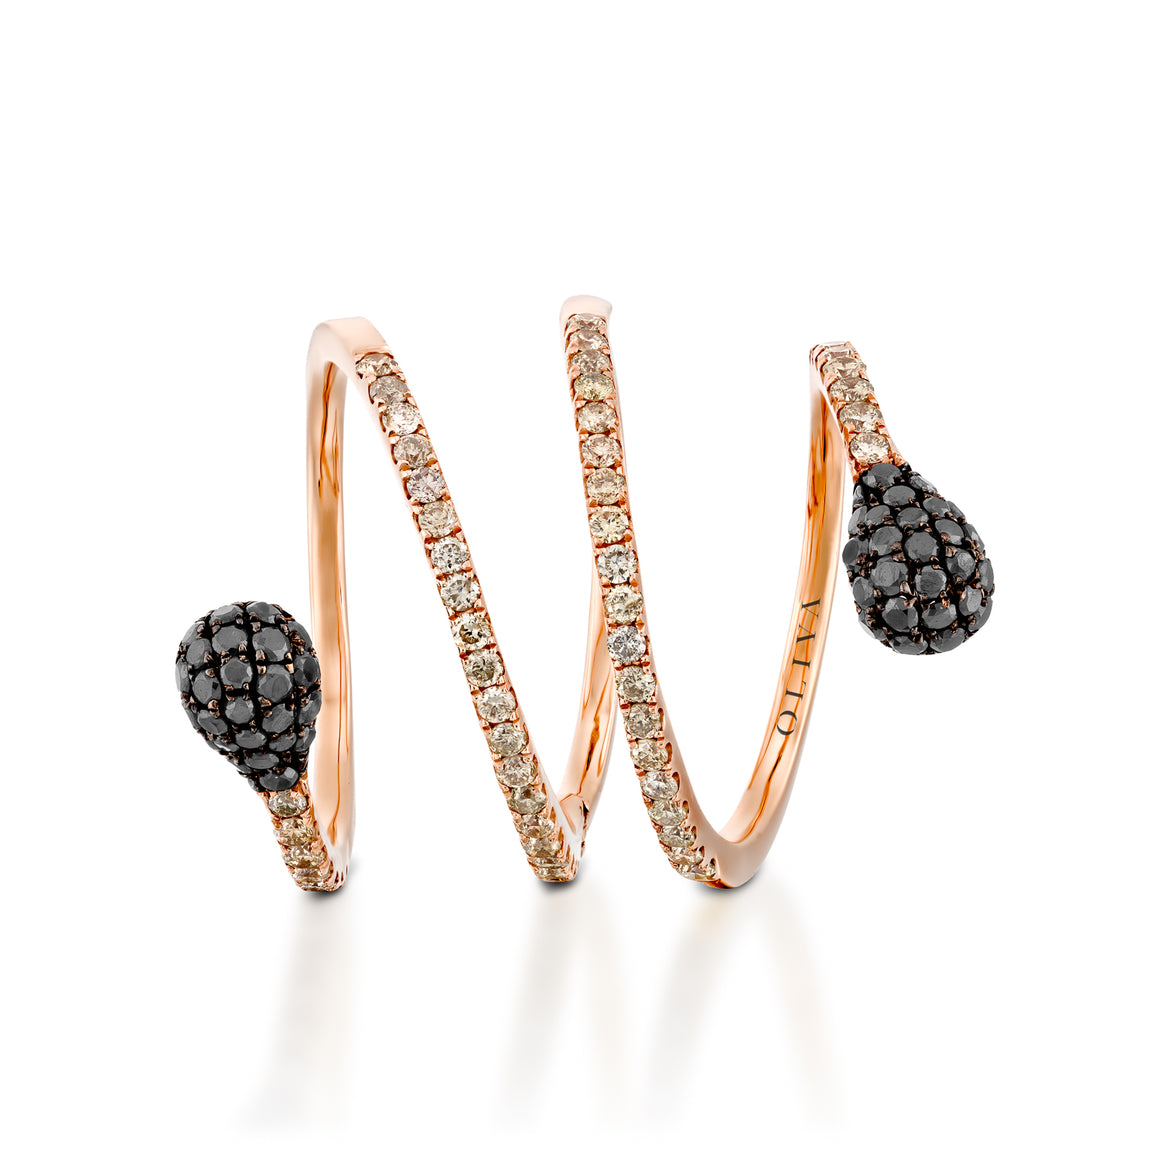 RNEJ14003-Rose gold Spiral diamond ring with  black diamonds heads